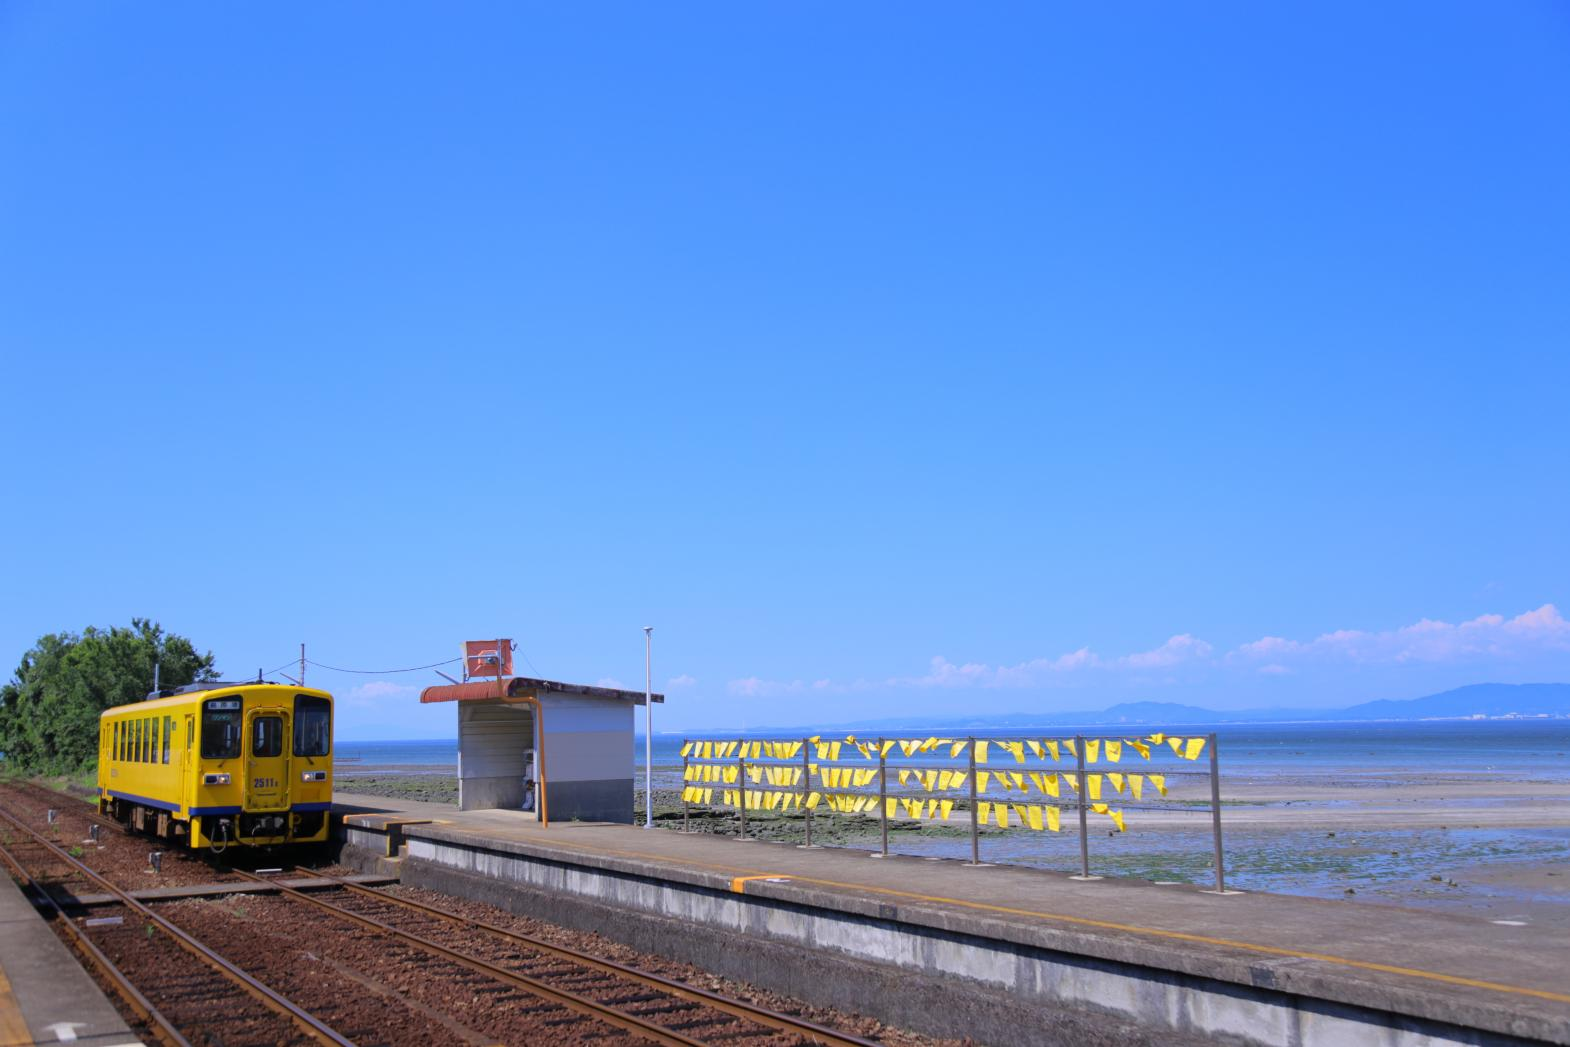 Shimabara Railway: A Train Ride with Spectacular Views-4